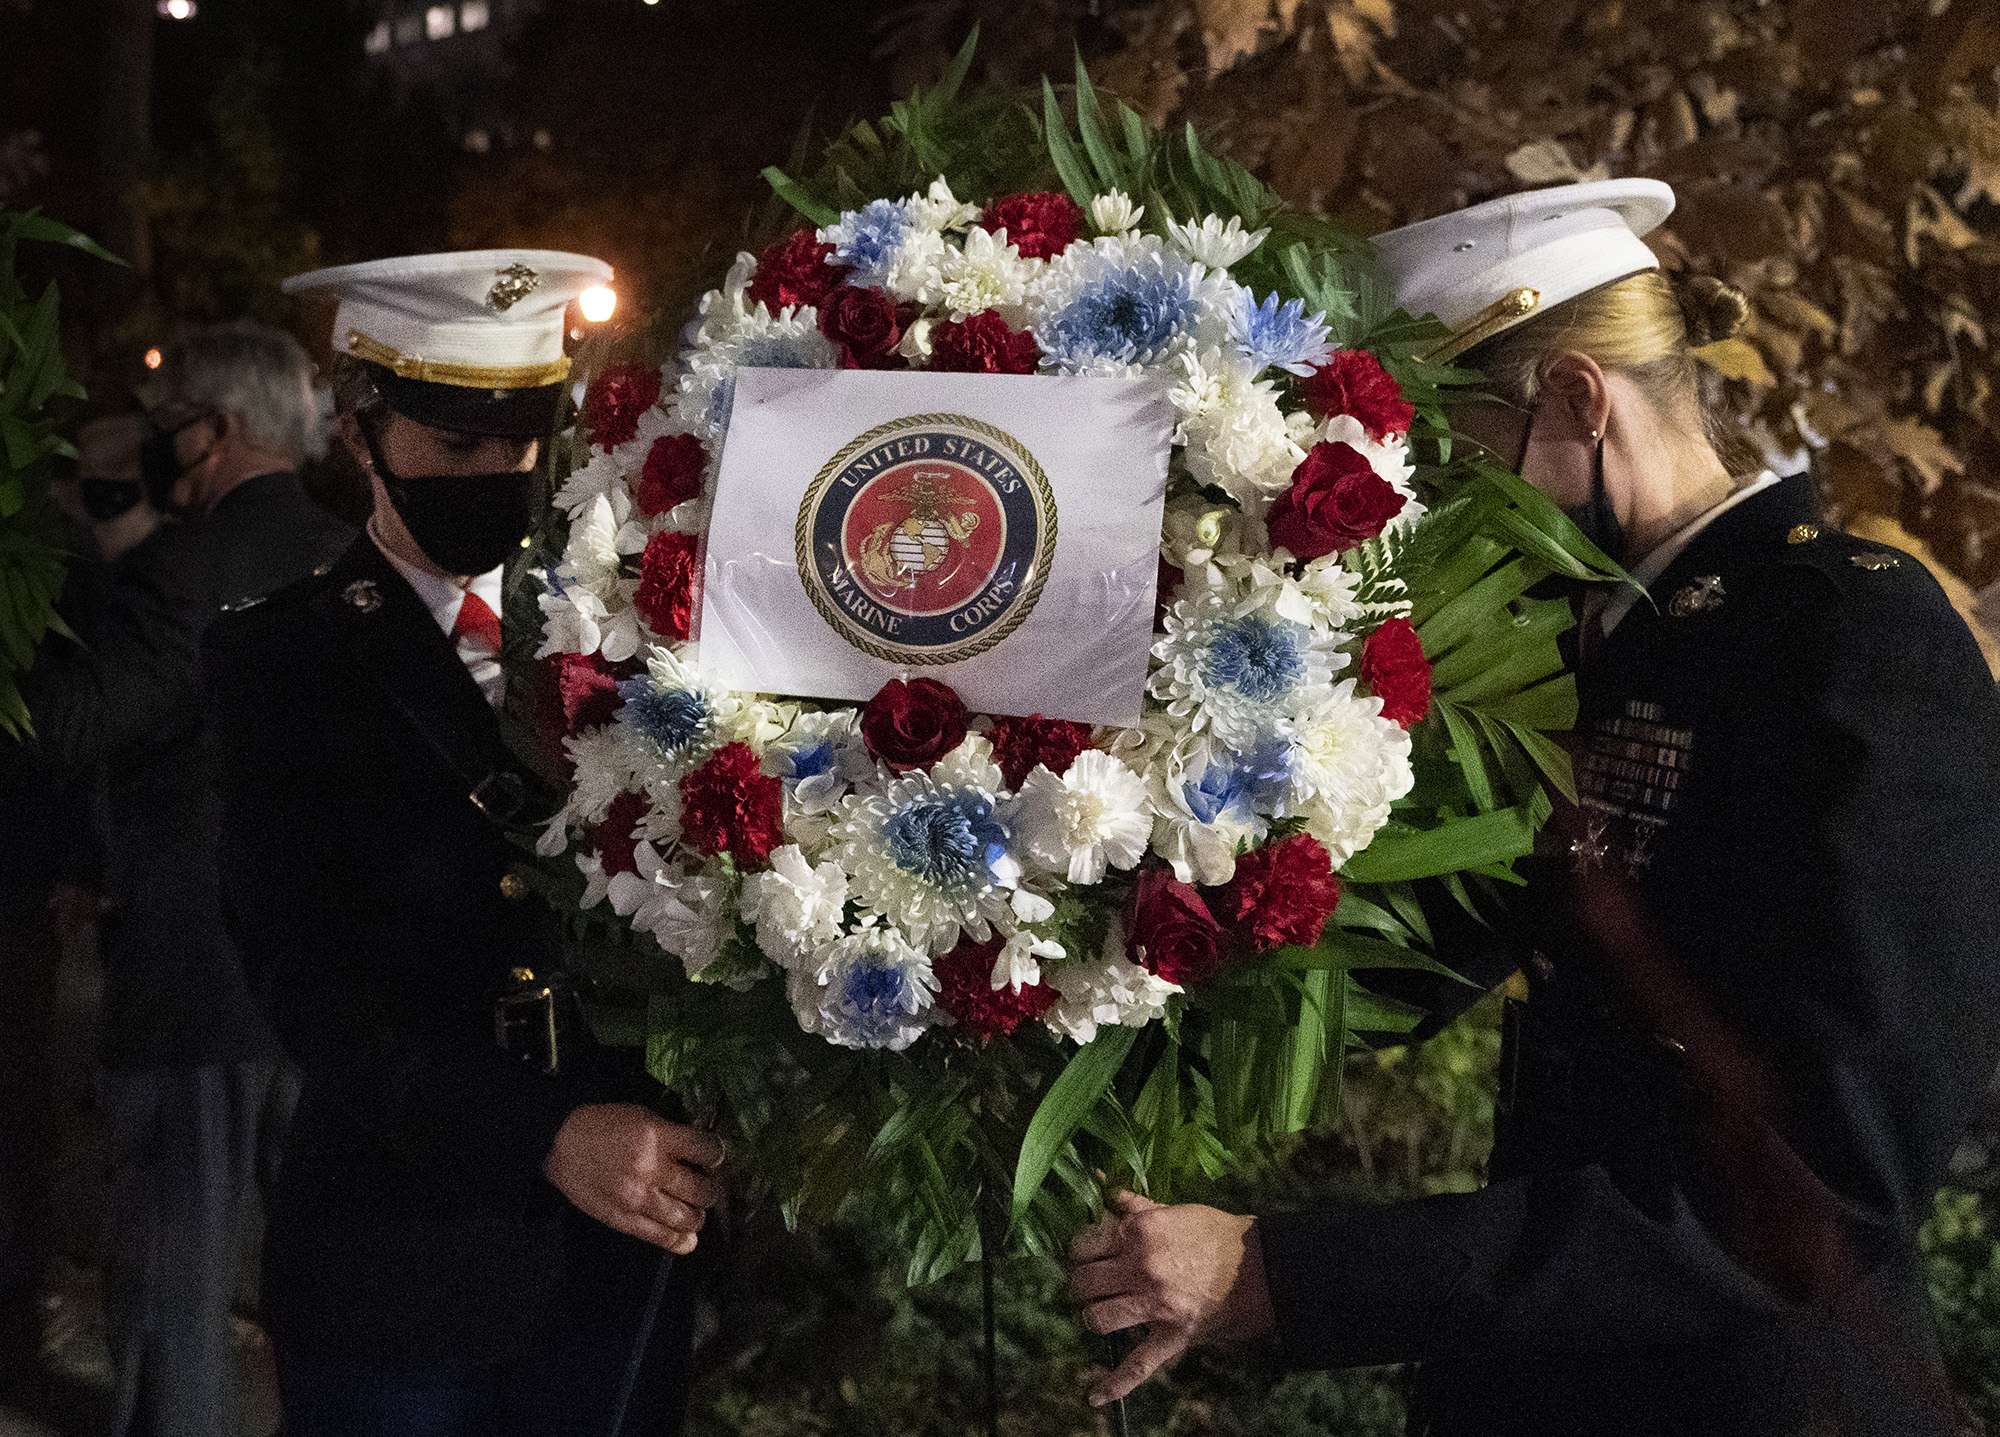 A Navy and Marine Corps honor guard lays a wreath at the Eternal Light Flagstaff in Madison Square Park, Wednesday, Nov. 11, 2020, in New York. The ceremony preceded a quiet 100-vehicle Veterans Day parade, with no spectators, to maintain the 101-year tradition of veterans marching on Fifth Avenue. (Mark Lennihan/AP)